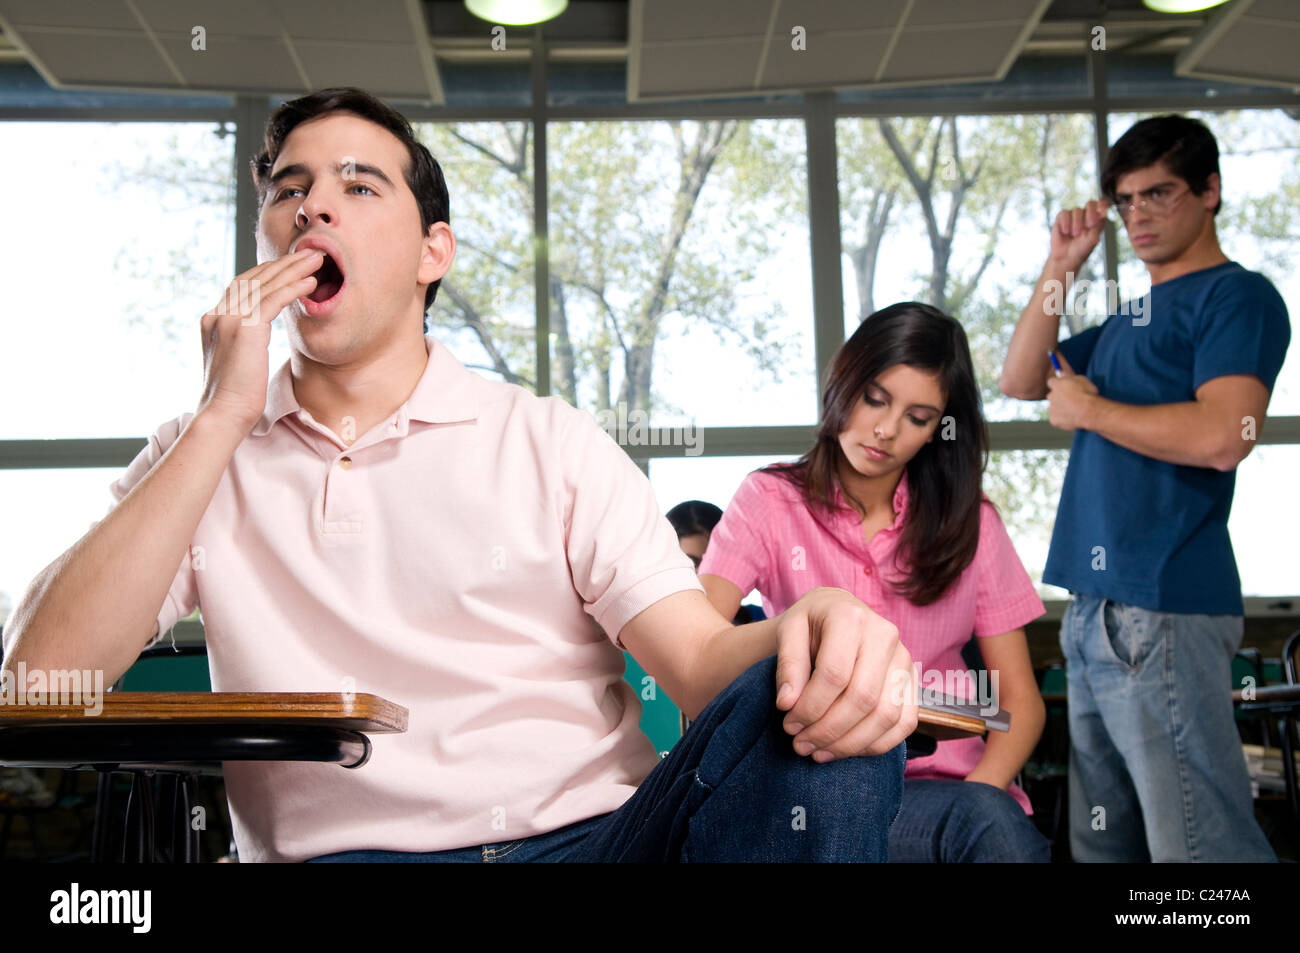 Male student yawning in class - Stock Image